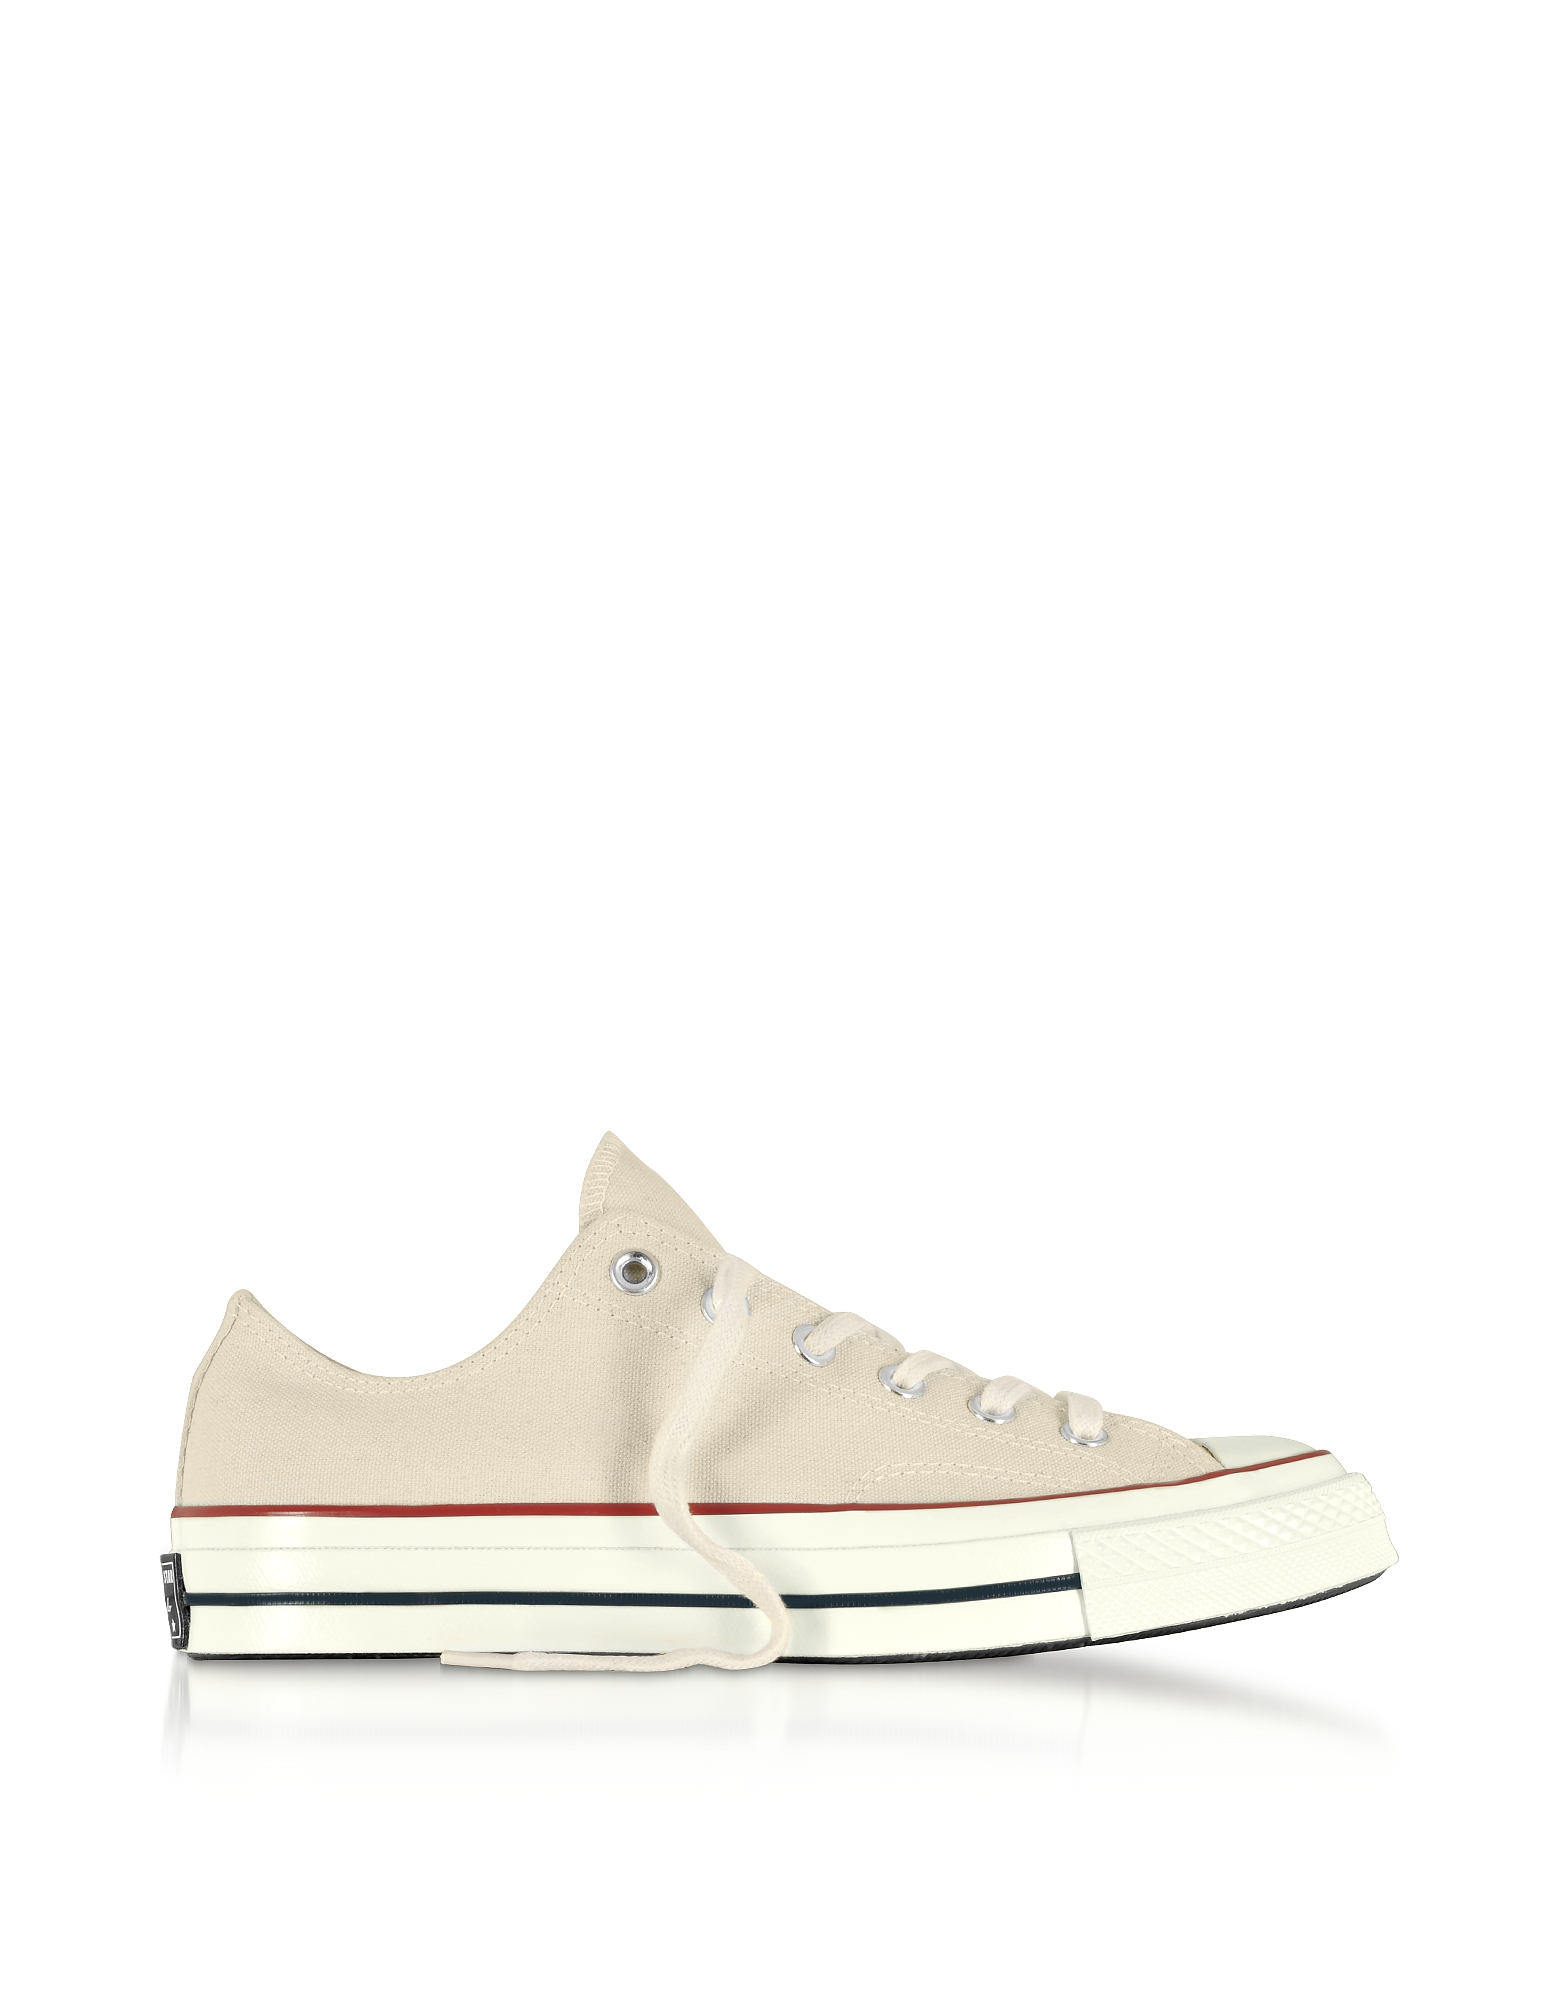 Converse Limited Edition Designer Shoes, Parchment Chuck 70 Classic Low Top Unisex Sneakers